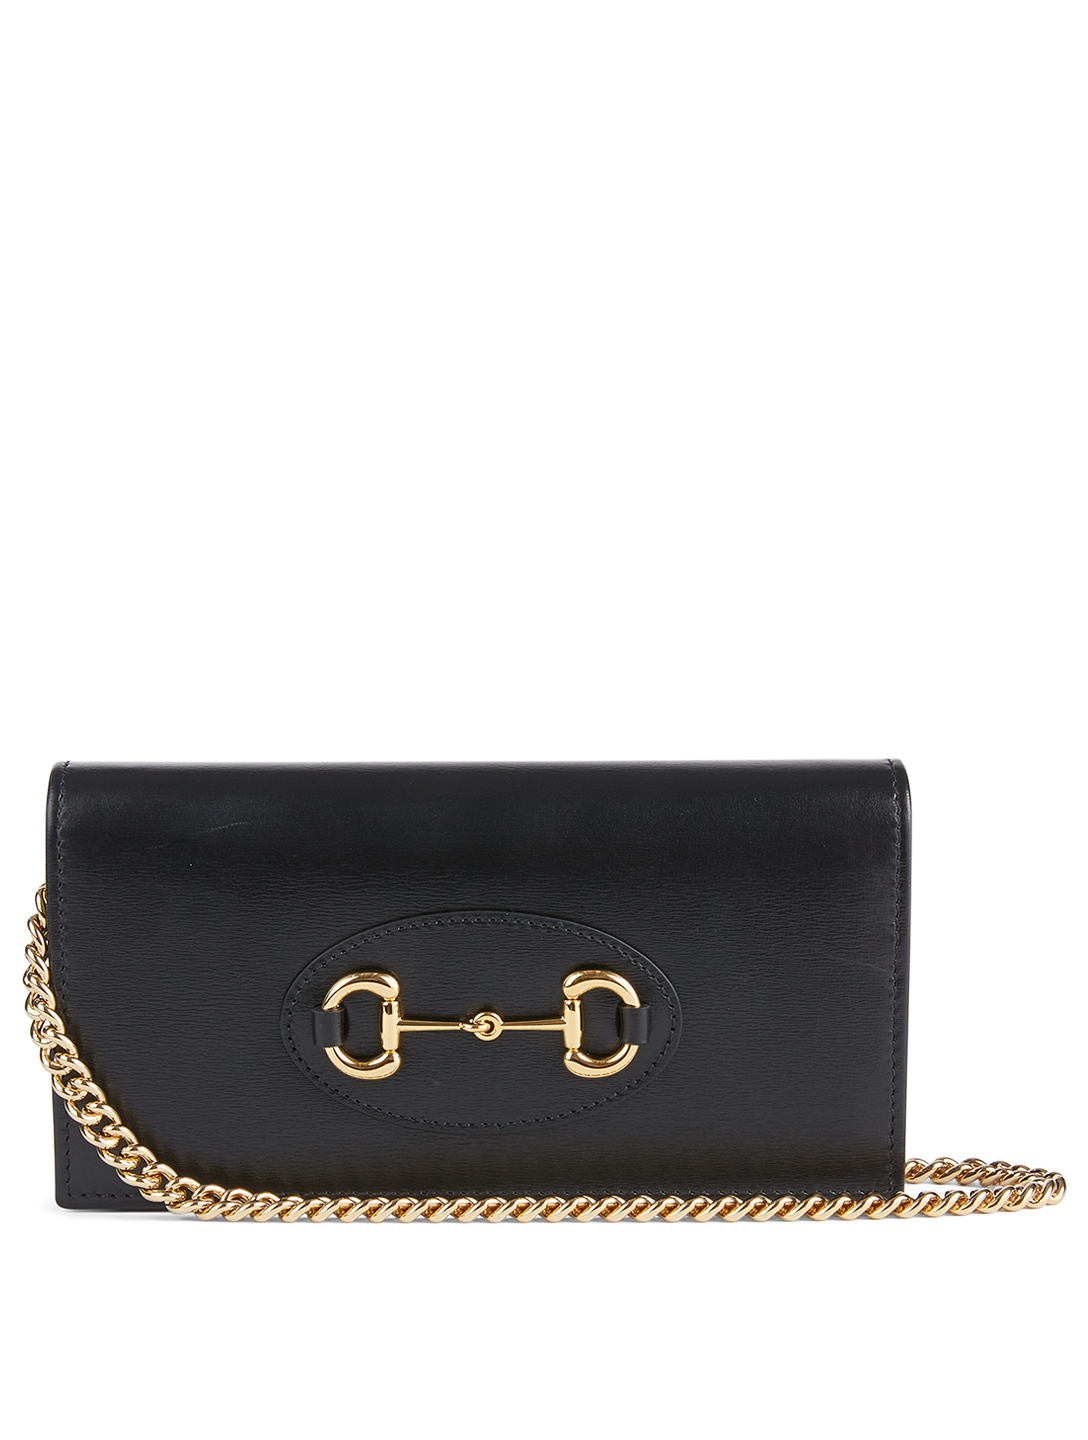 GUCCI Gucci 1955 Horsebit Leather Wallet With Chain Women's Black